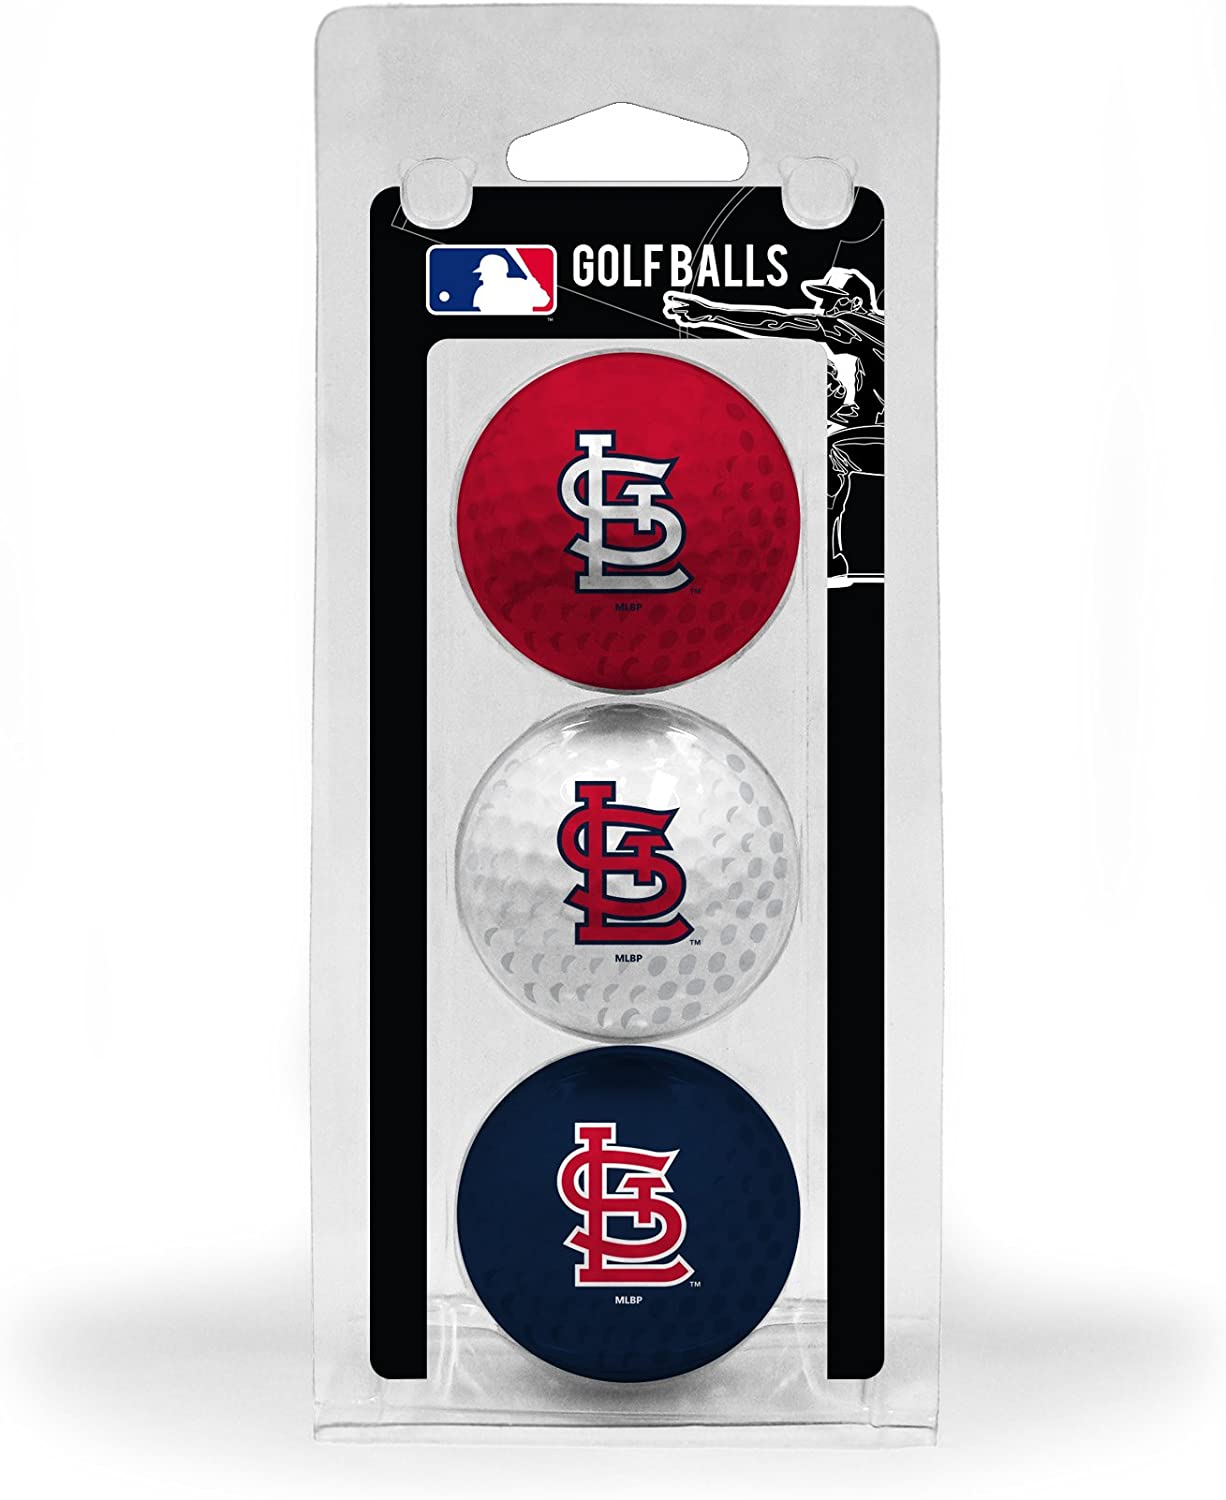 Team Golf MLB Regulation Size Golf Balls, 3 Pack, Full Color Durable Team Imprint (Ball Color May Vary)